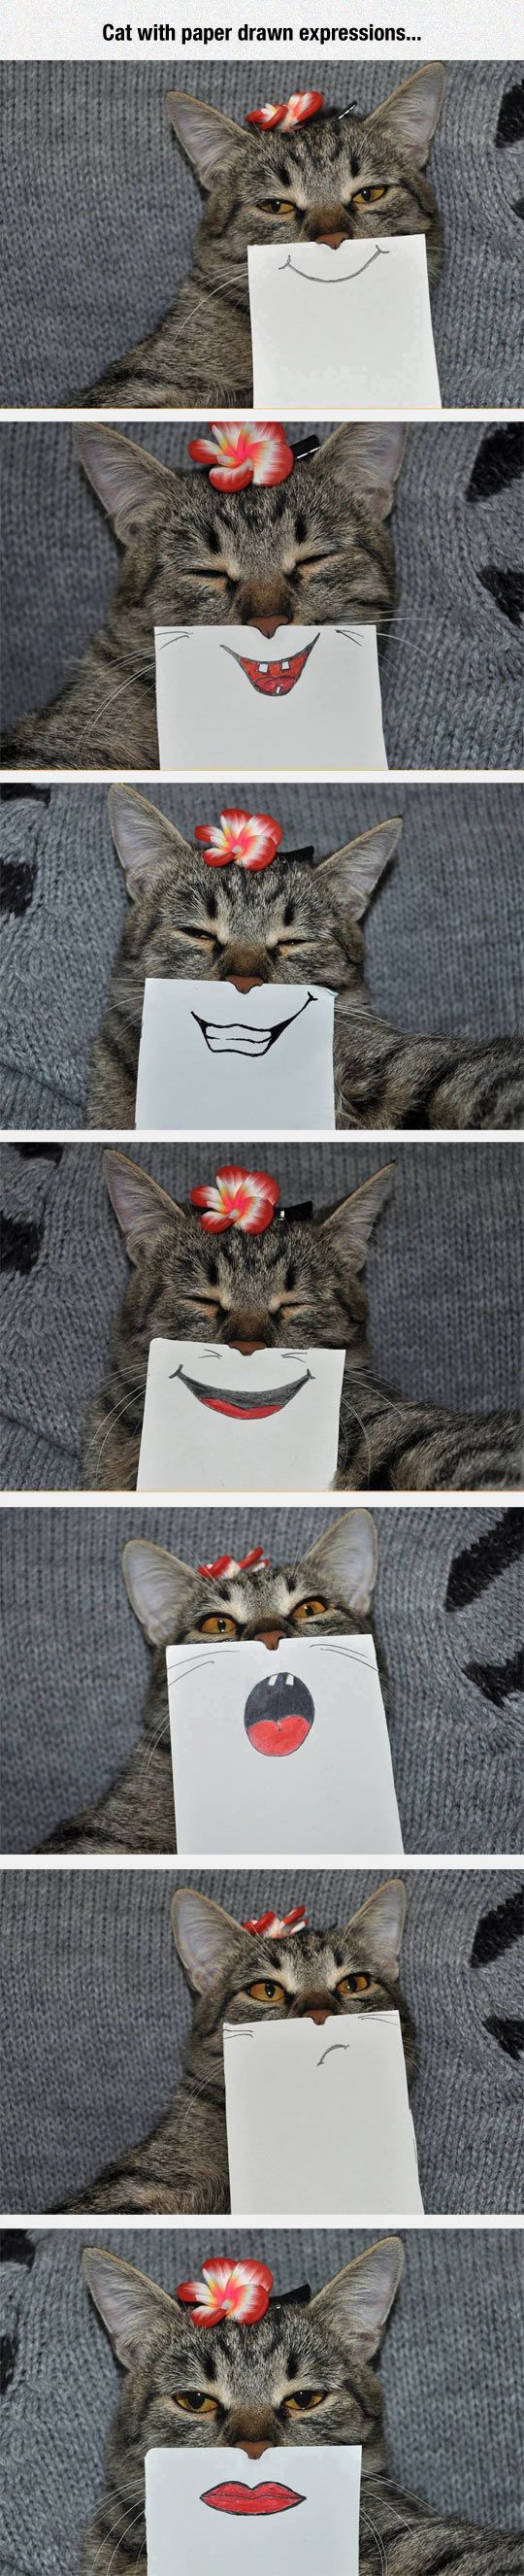 Cats With Paper Drawn Expressions cute animals cat cats adorable animal kittens pets kitten funny pictures funny animals funny cats: